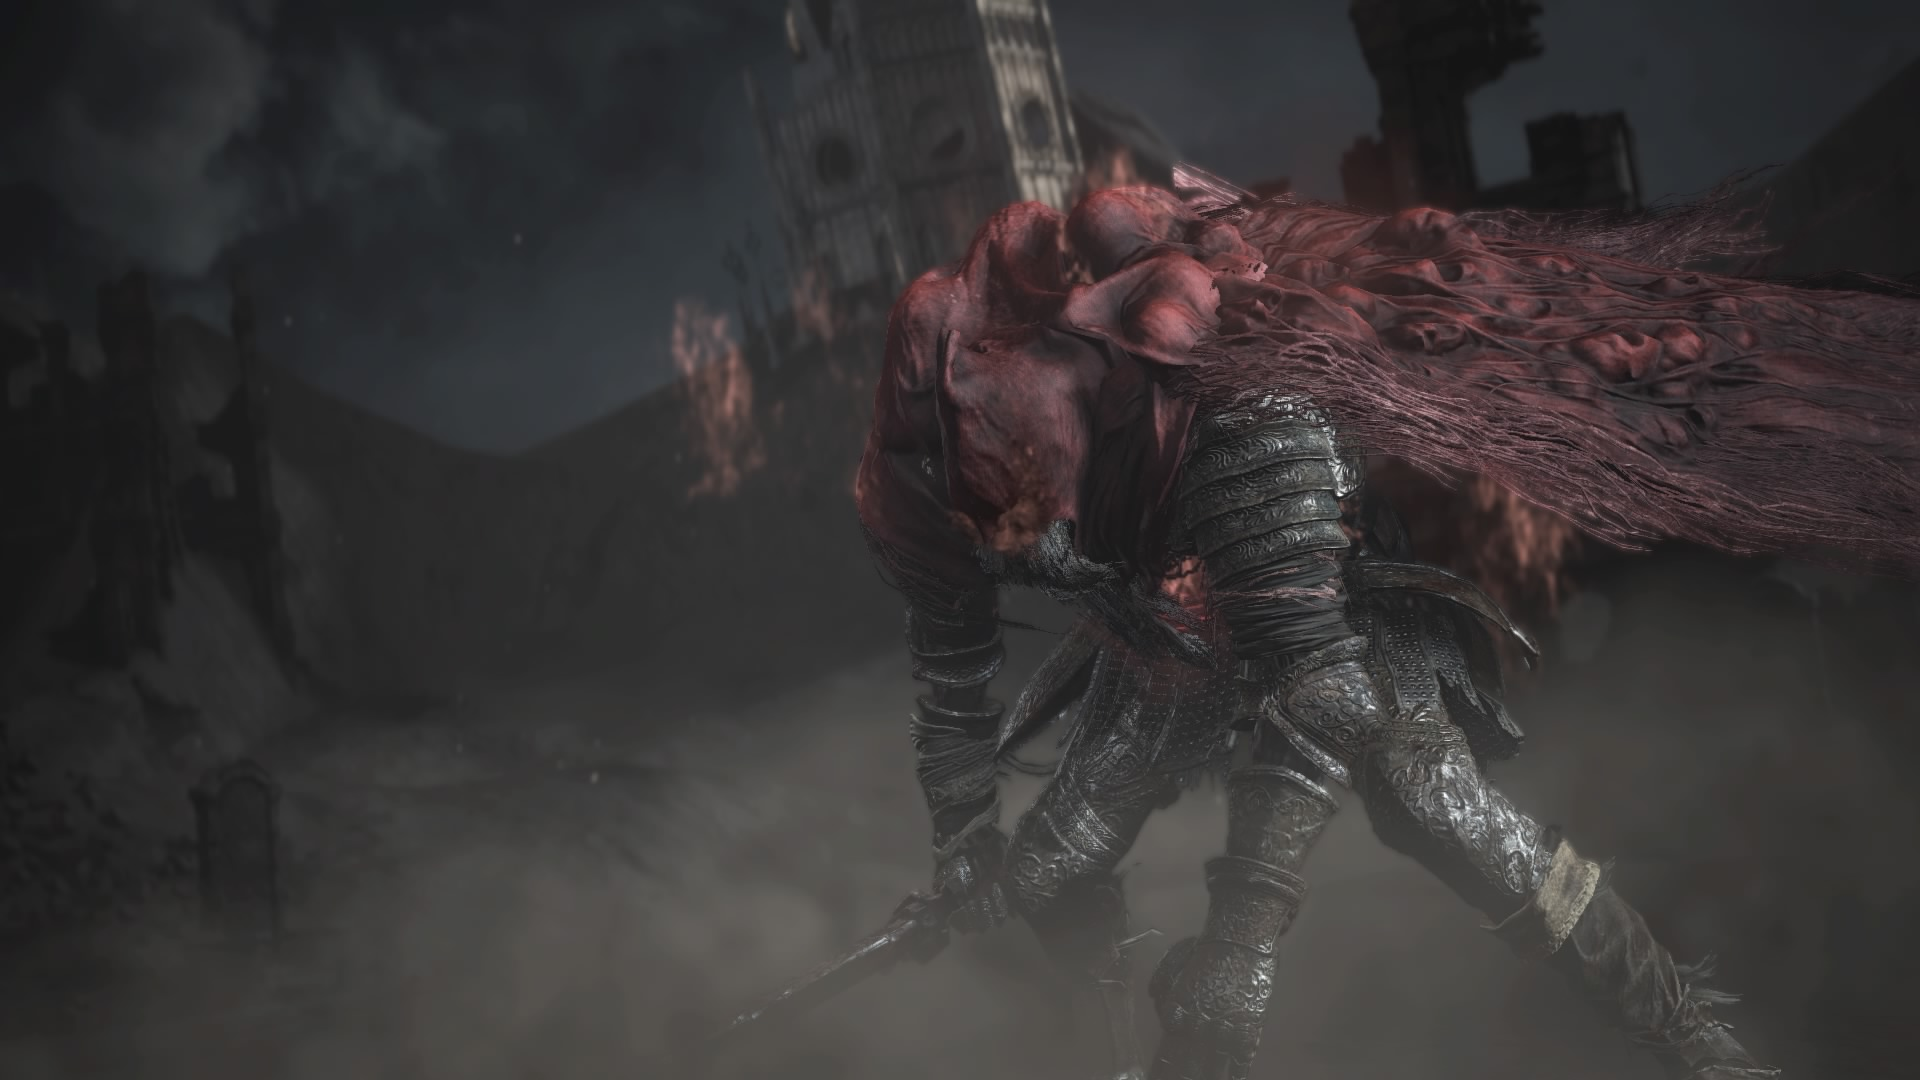 Dark souls 3 the ringed city full walkthrough the ringed city a sad creature in a red hood is waiting for you the final boss of the ringed city dlc is down below come prepared because this might be the most biocorpaavc Gallery